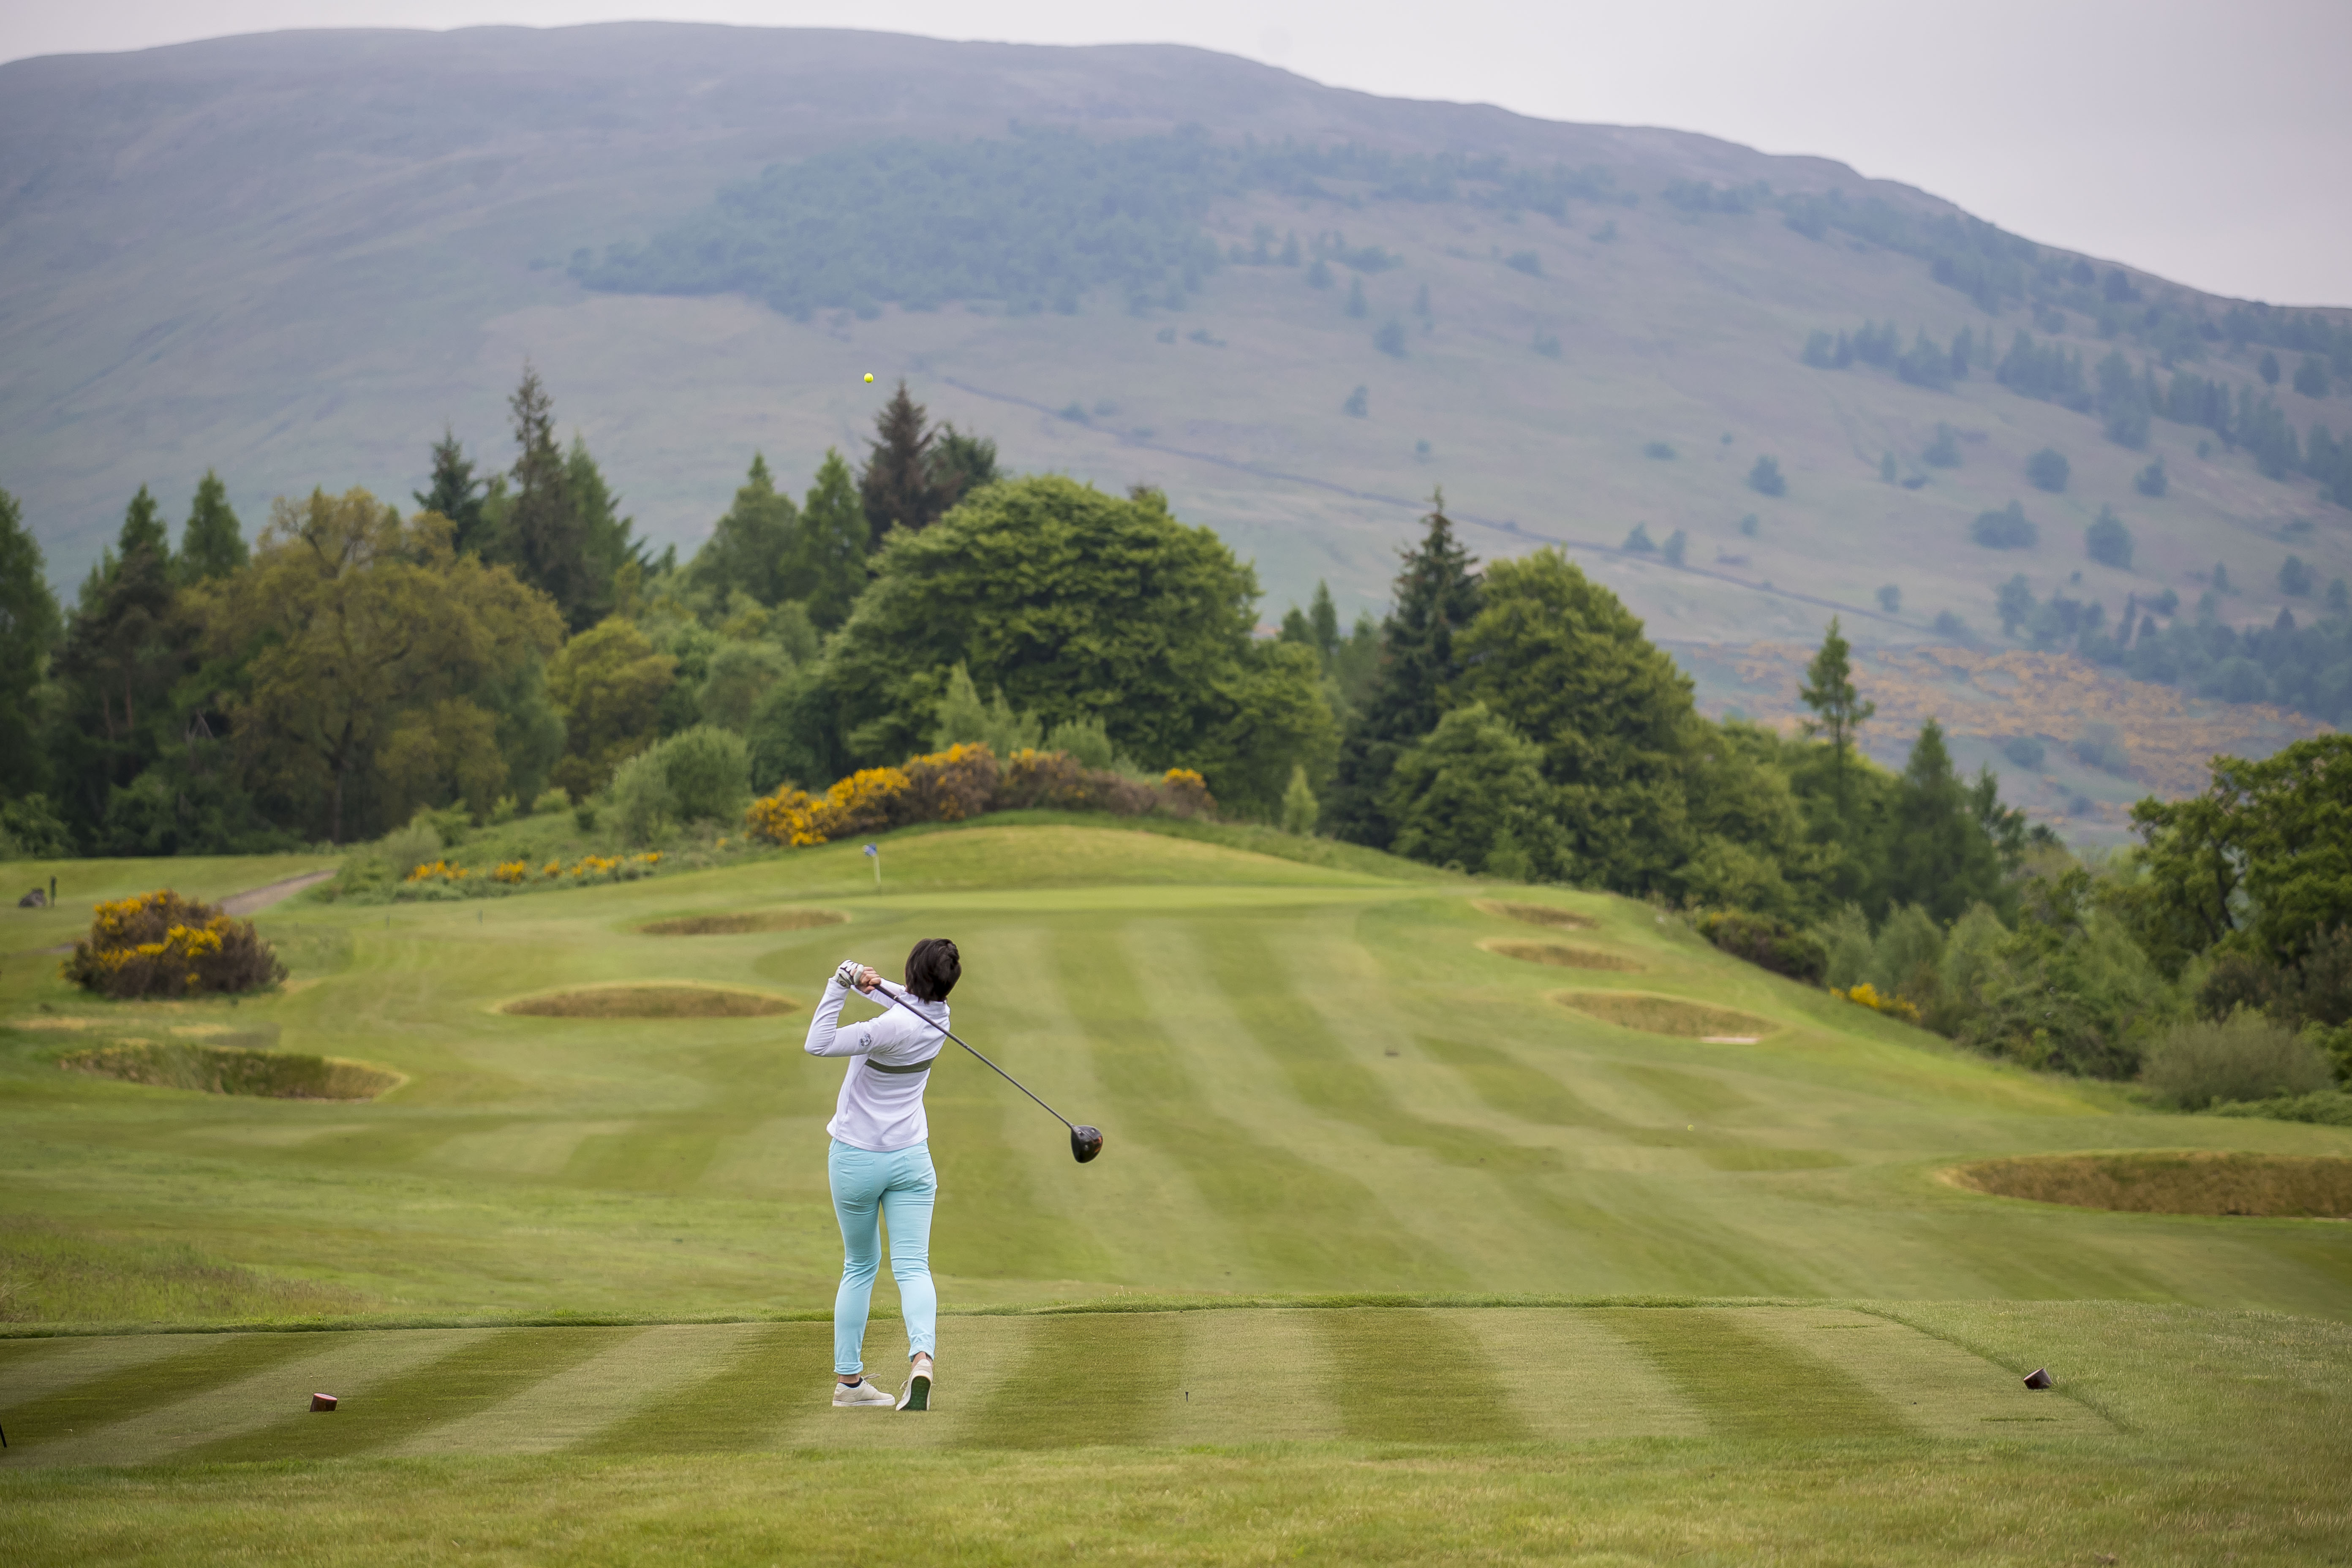 23/05/18 - The Carrick Golf Course were speaking at the SPFL Trust Annual Golf Day at the Carrick, All Proceeds raised will be used towards mental health first aid training in Scottish Football in Partnership with the Chris Mitchell Foundation for more info visit www.spfltrust.org.uk Photo credit should read: © Craig Watson Craig Watson, craigwatsonpix@icloud.com 07479748060 www.craigwatson.co.uk